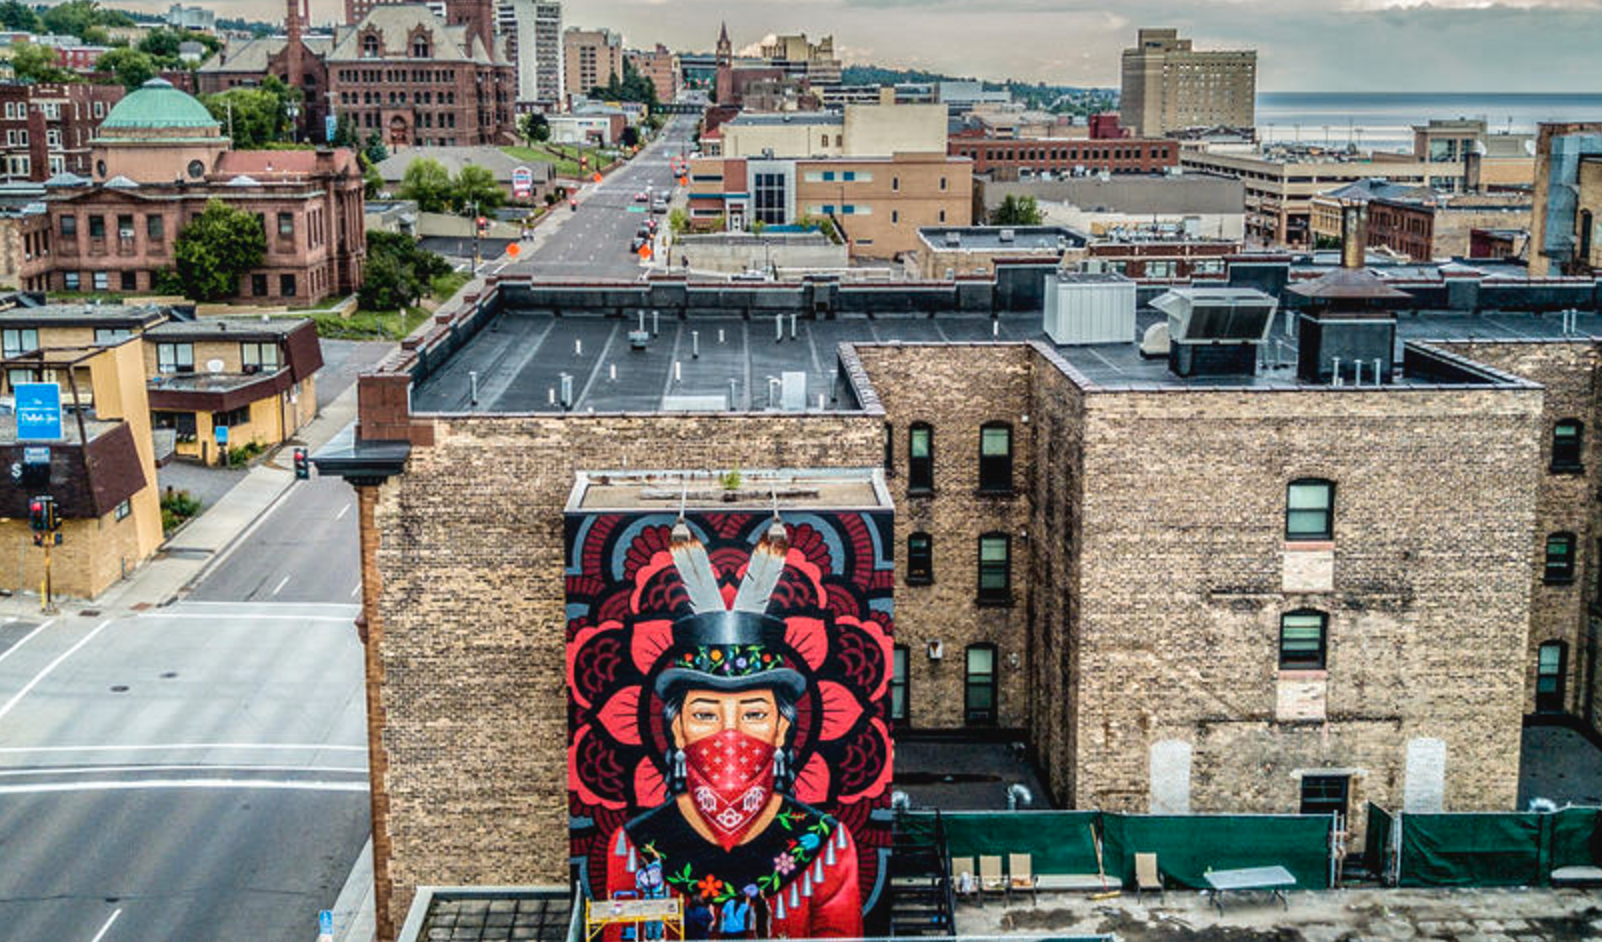 native statement mural nearing completion in downtown duluth an native statement mural nearing completion in downtown duluth an image of protest